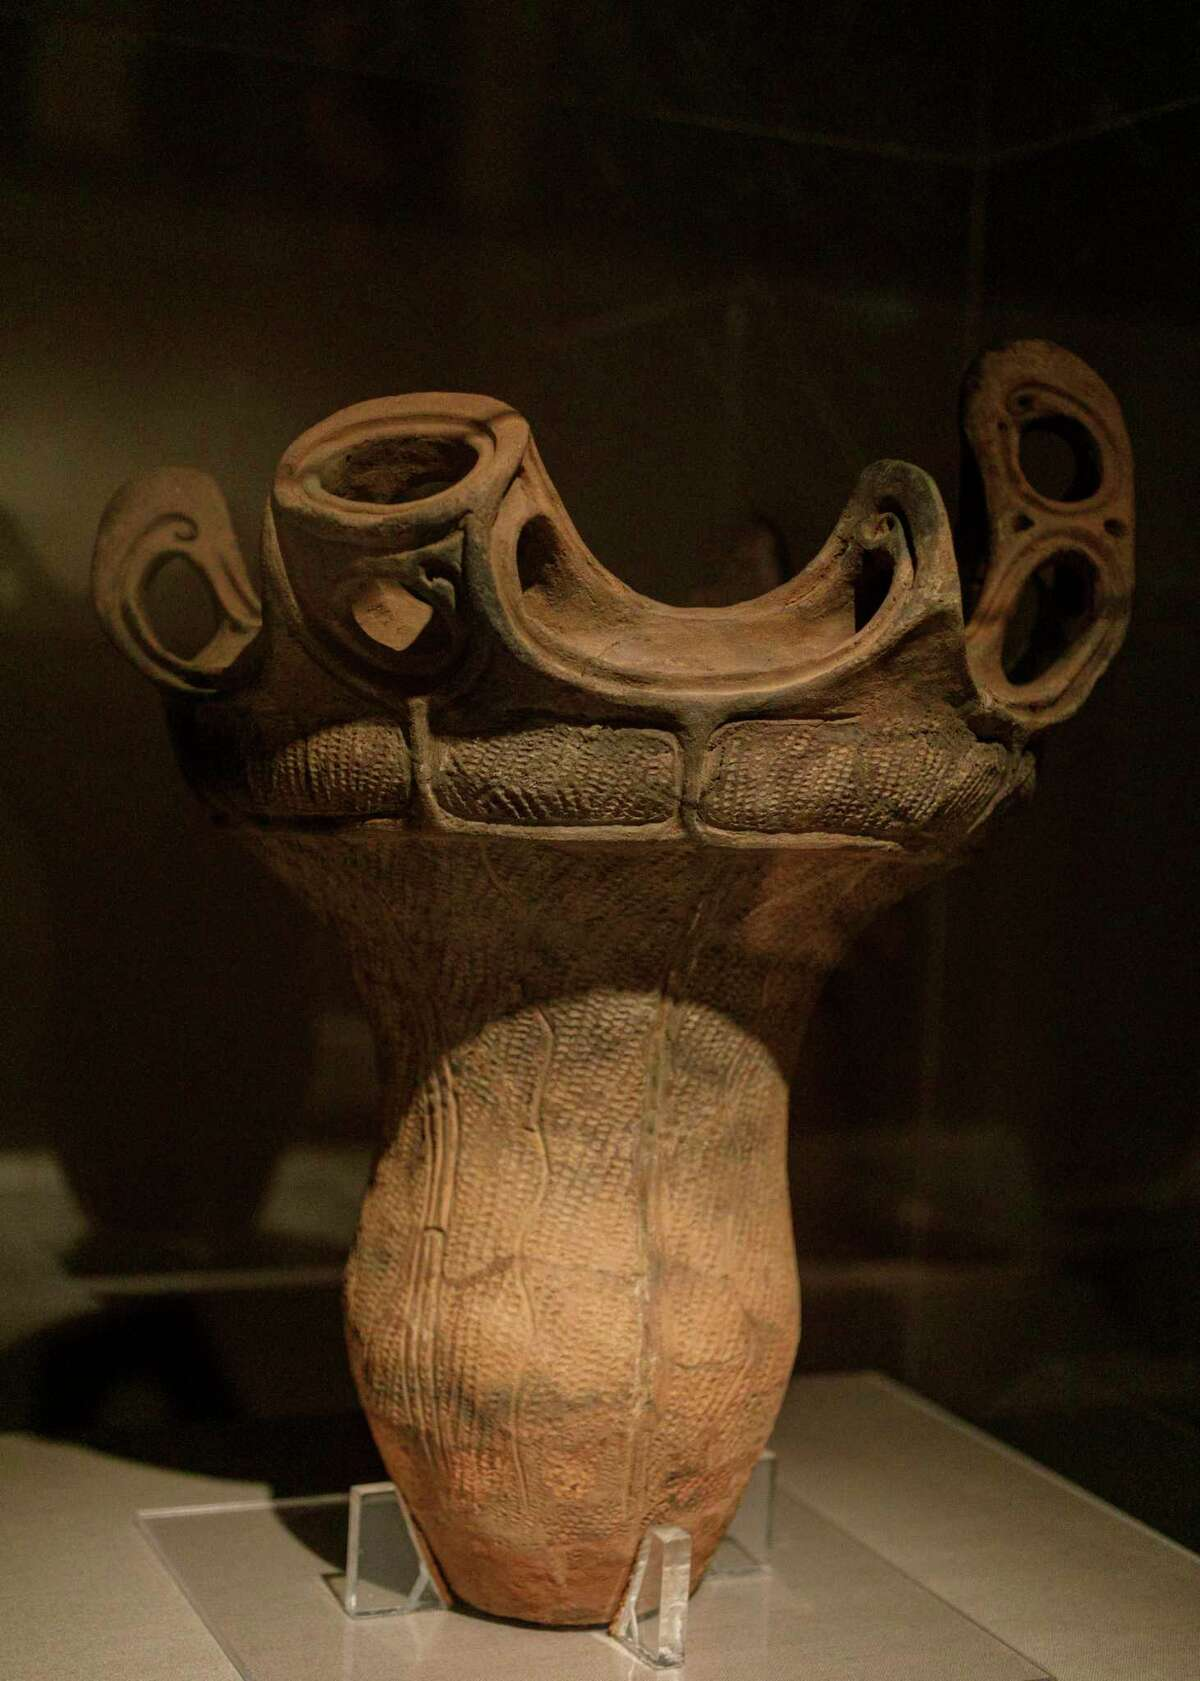 A Japanese earthenware jar from the Jomon Period, 3000-2000 BC, is on display for visitors to look at in the Japanese art gallery at the San Antonio Museum of Art in San Antonio, Texas, Friday, Oct. 1, 2021. The jar was purchased with funds provided by the Lenora and Walter F. Brown Asian Art Challenge Fund.